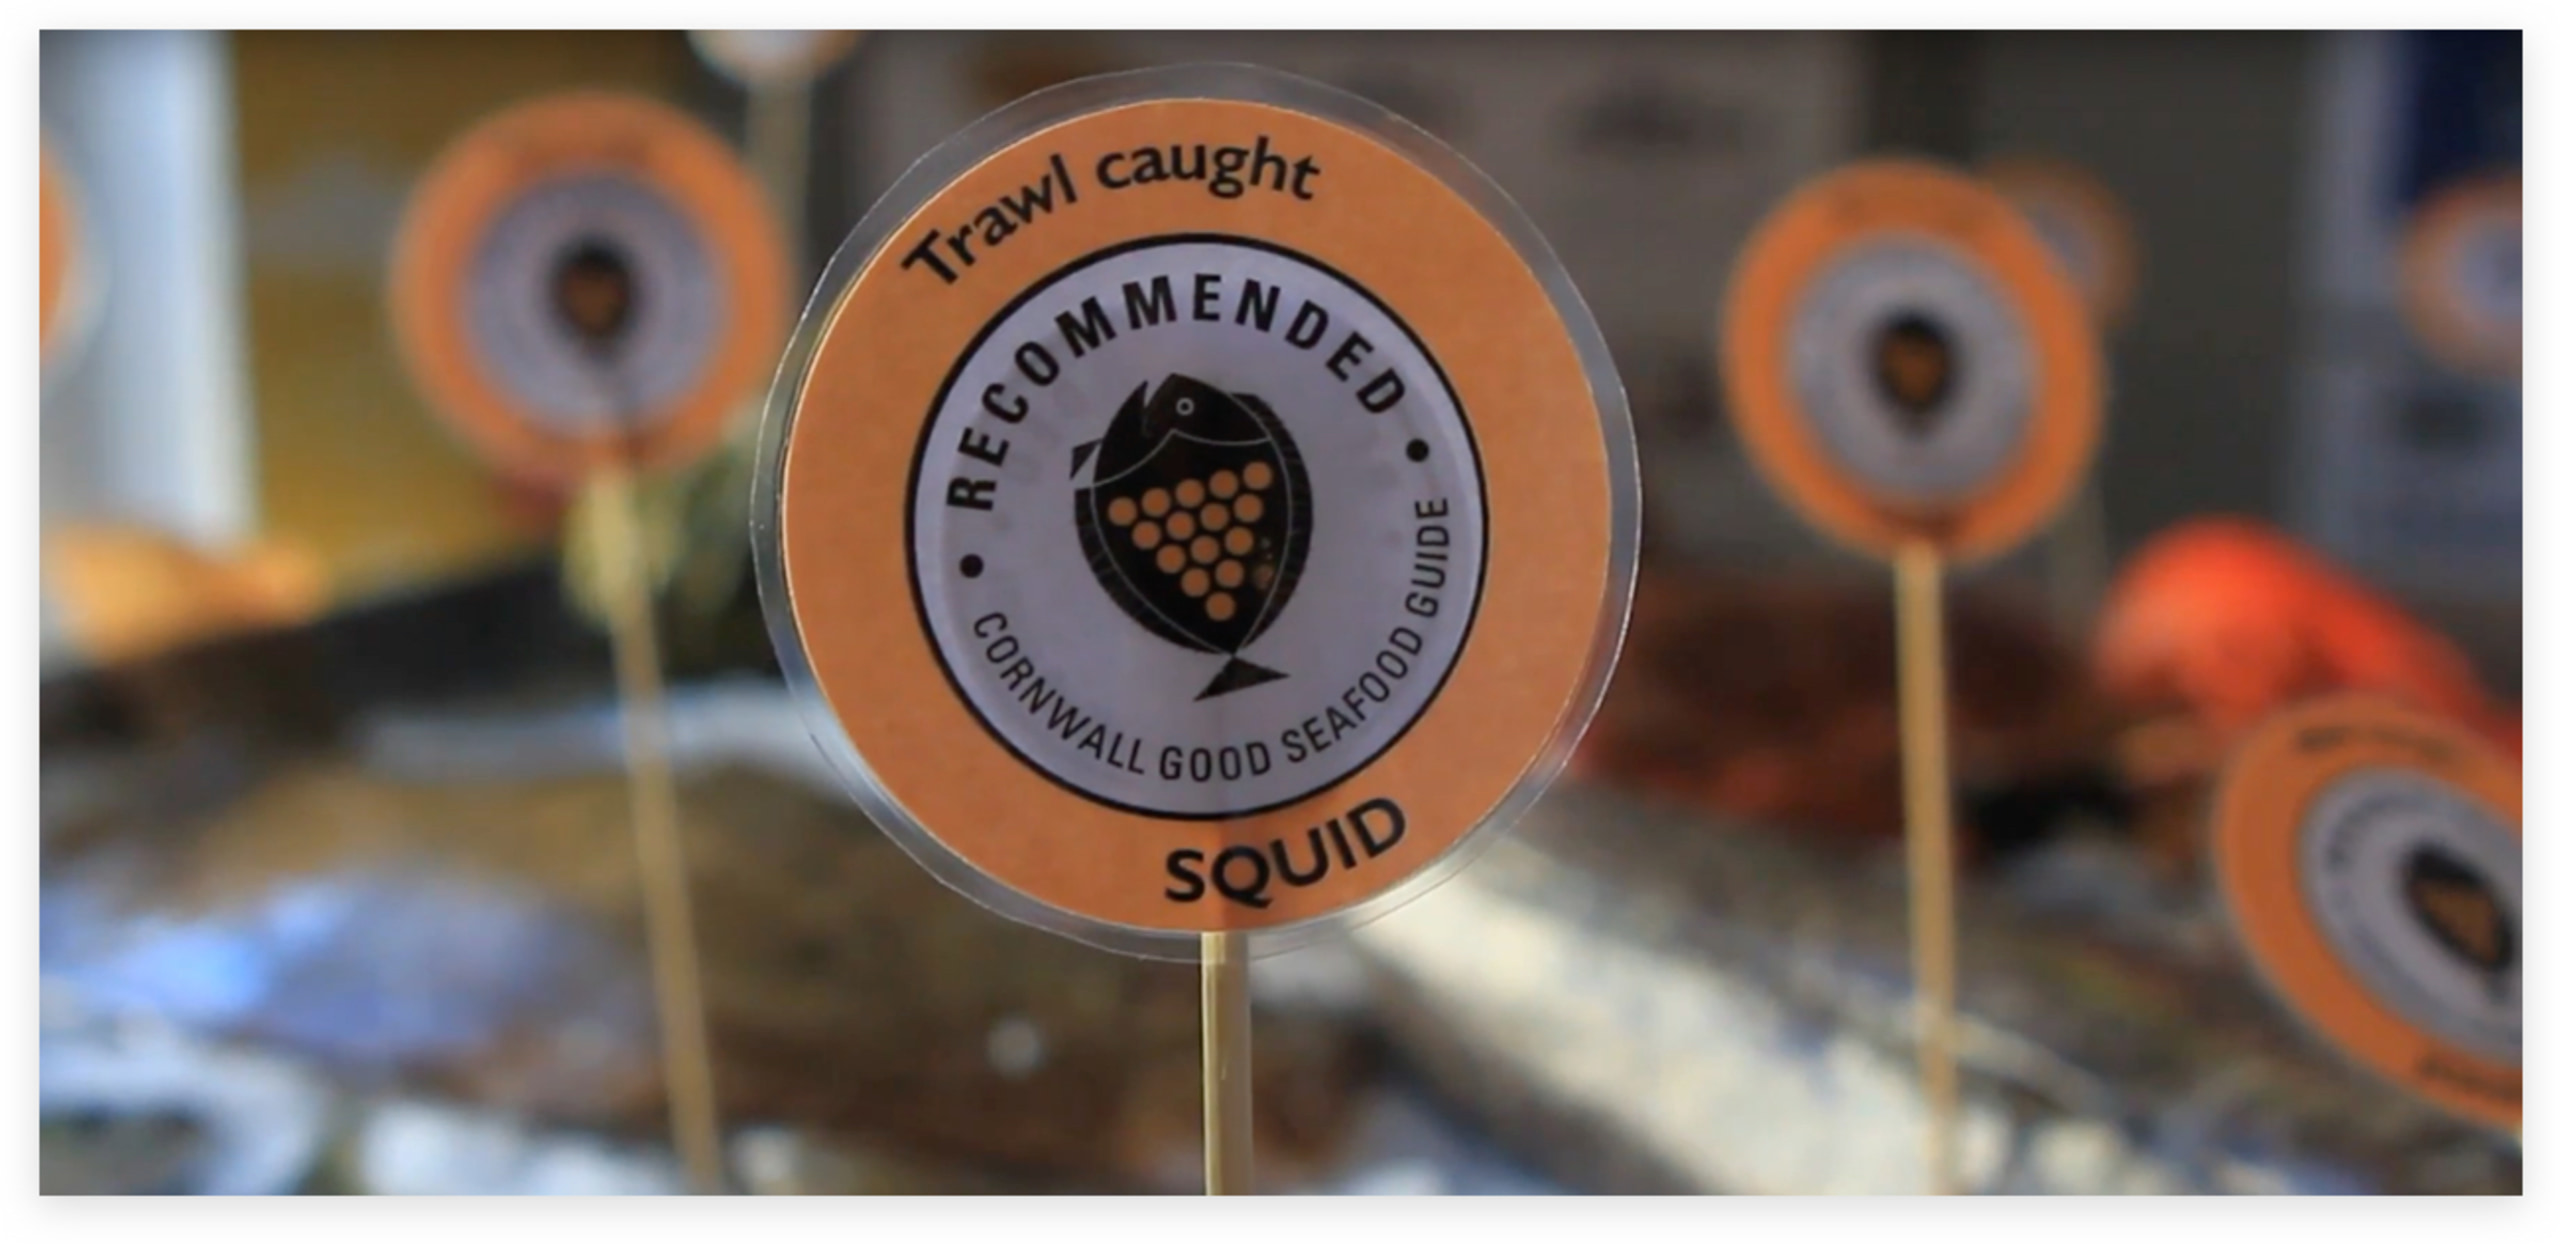 cornwall good seafood guide recommended trawl caught badge